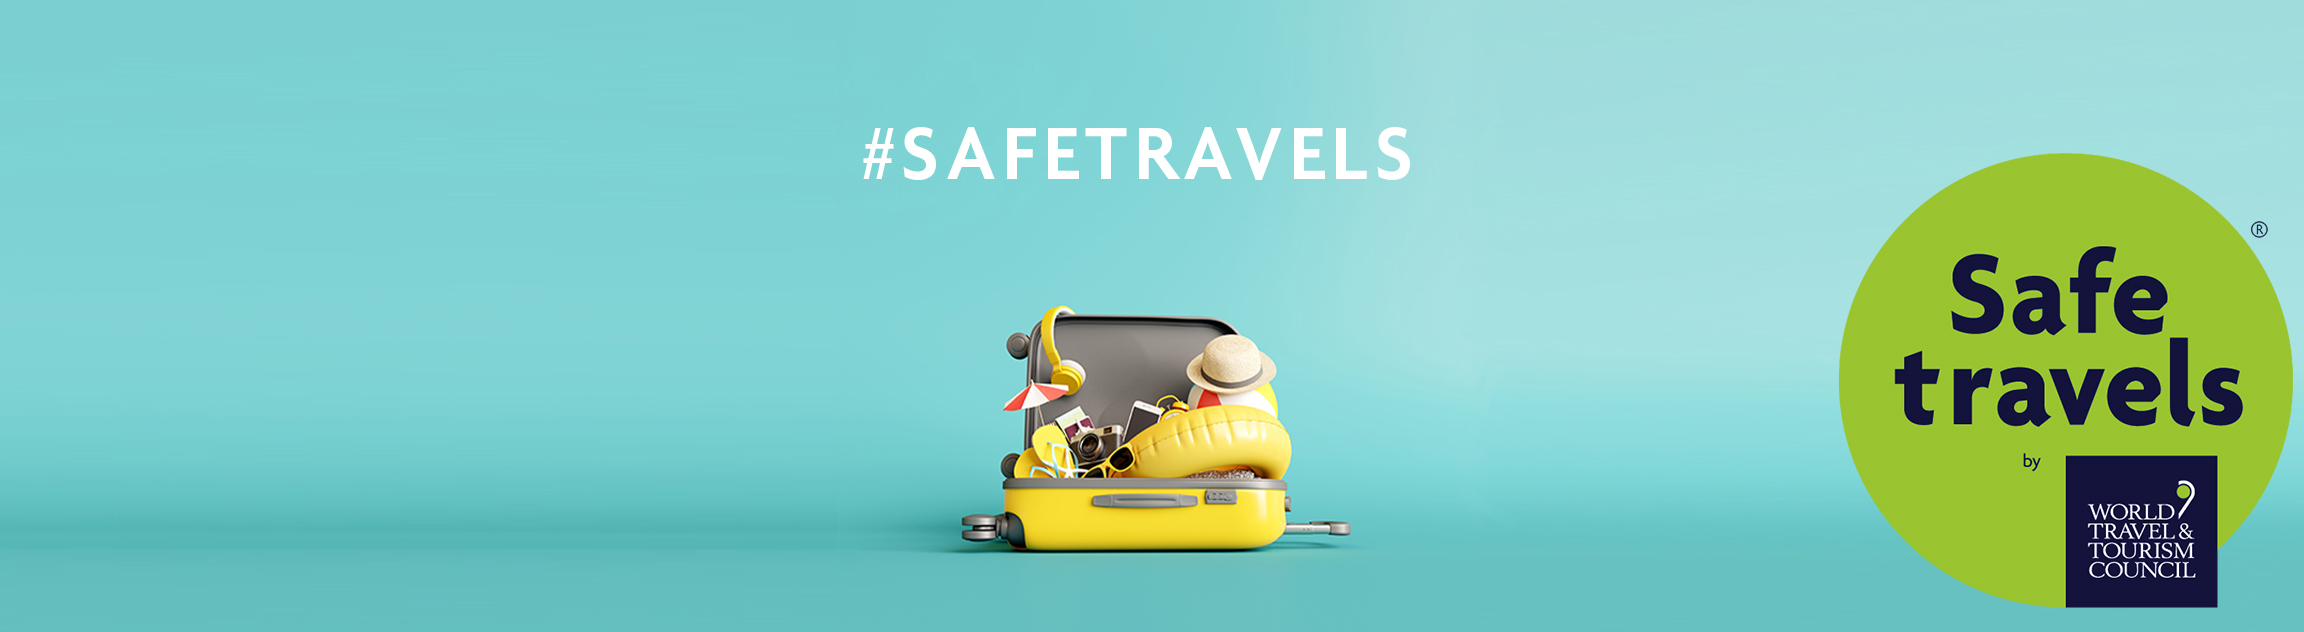 SafeTravels with R stamp